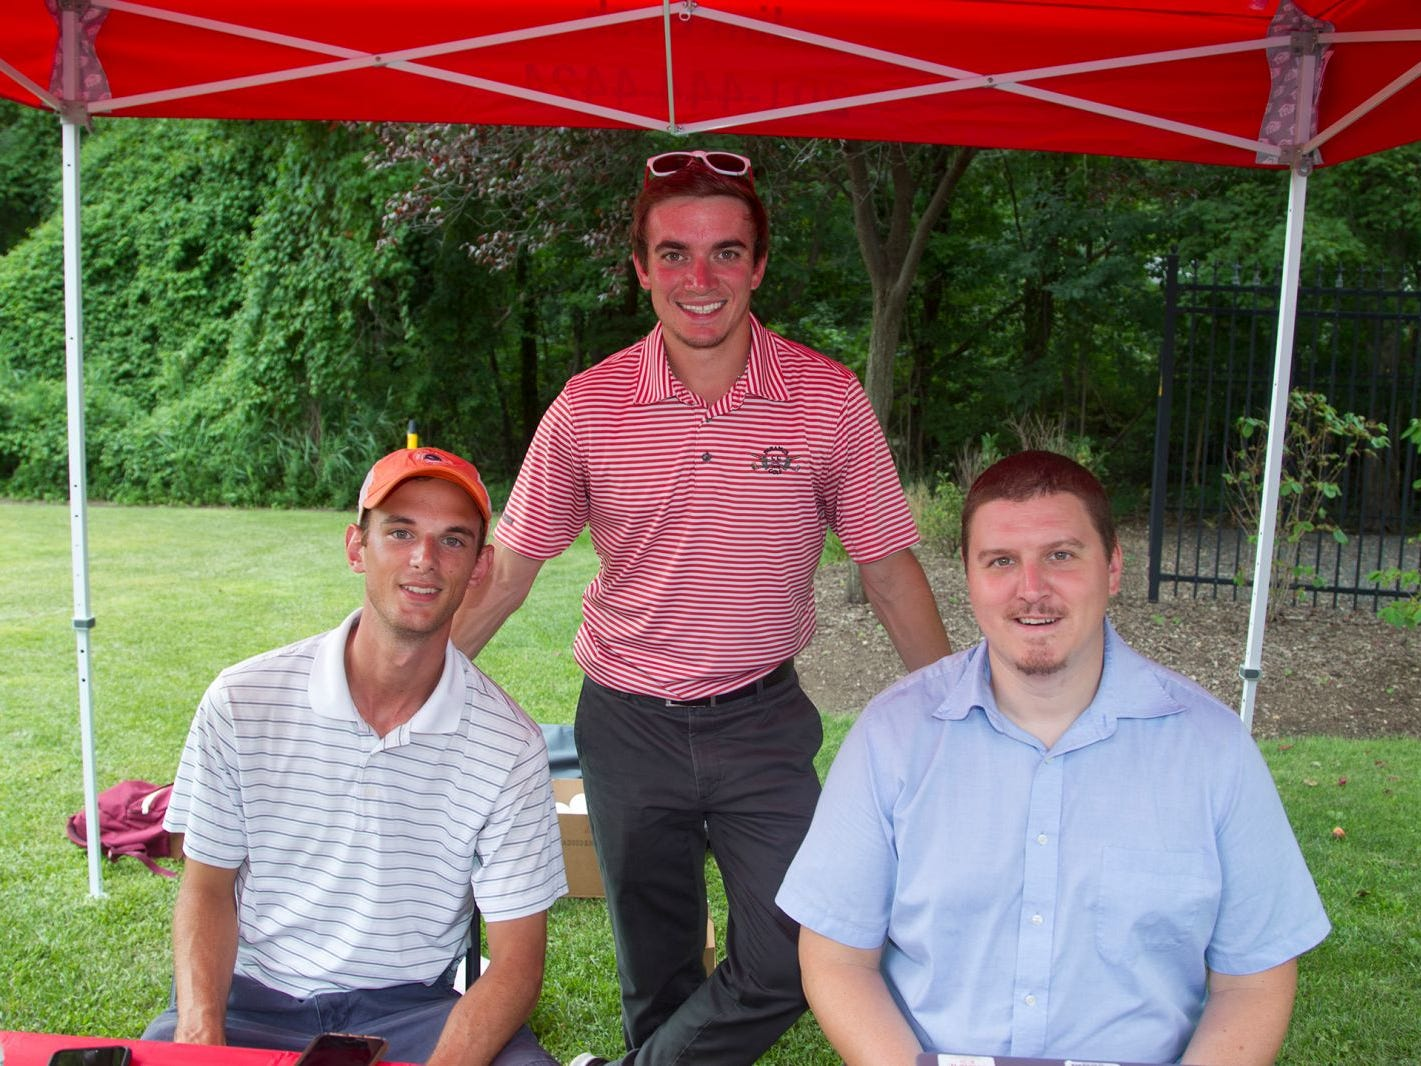 State Farm - Dillion Corbo, CJ Feinroth, Kevin Frank. Paramus National Night Out 2018 behind Paramus Library. 08/07/2018